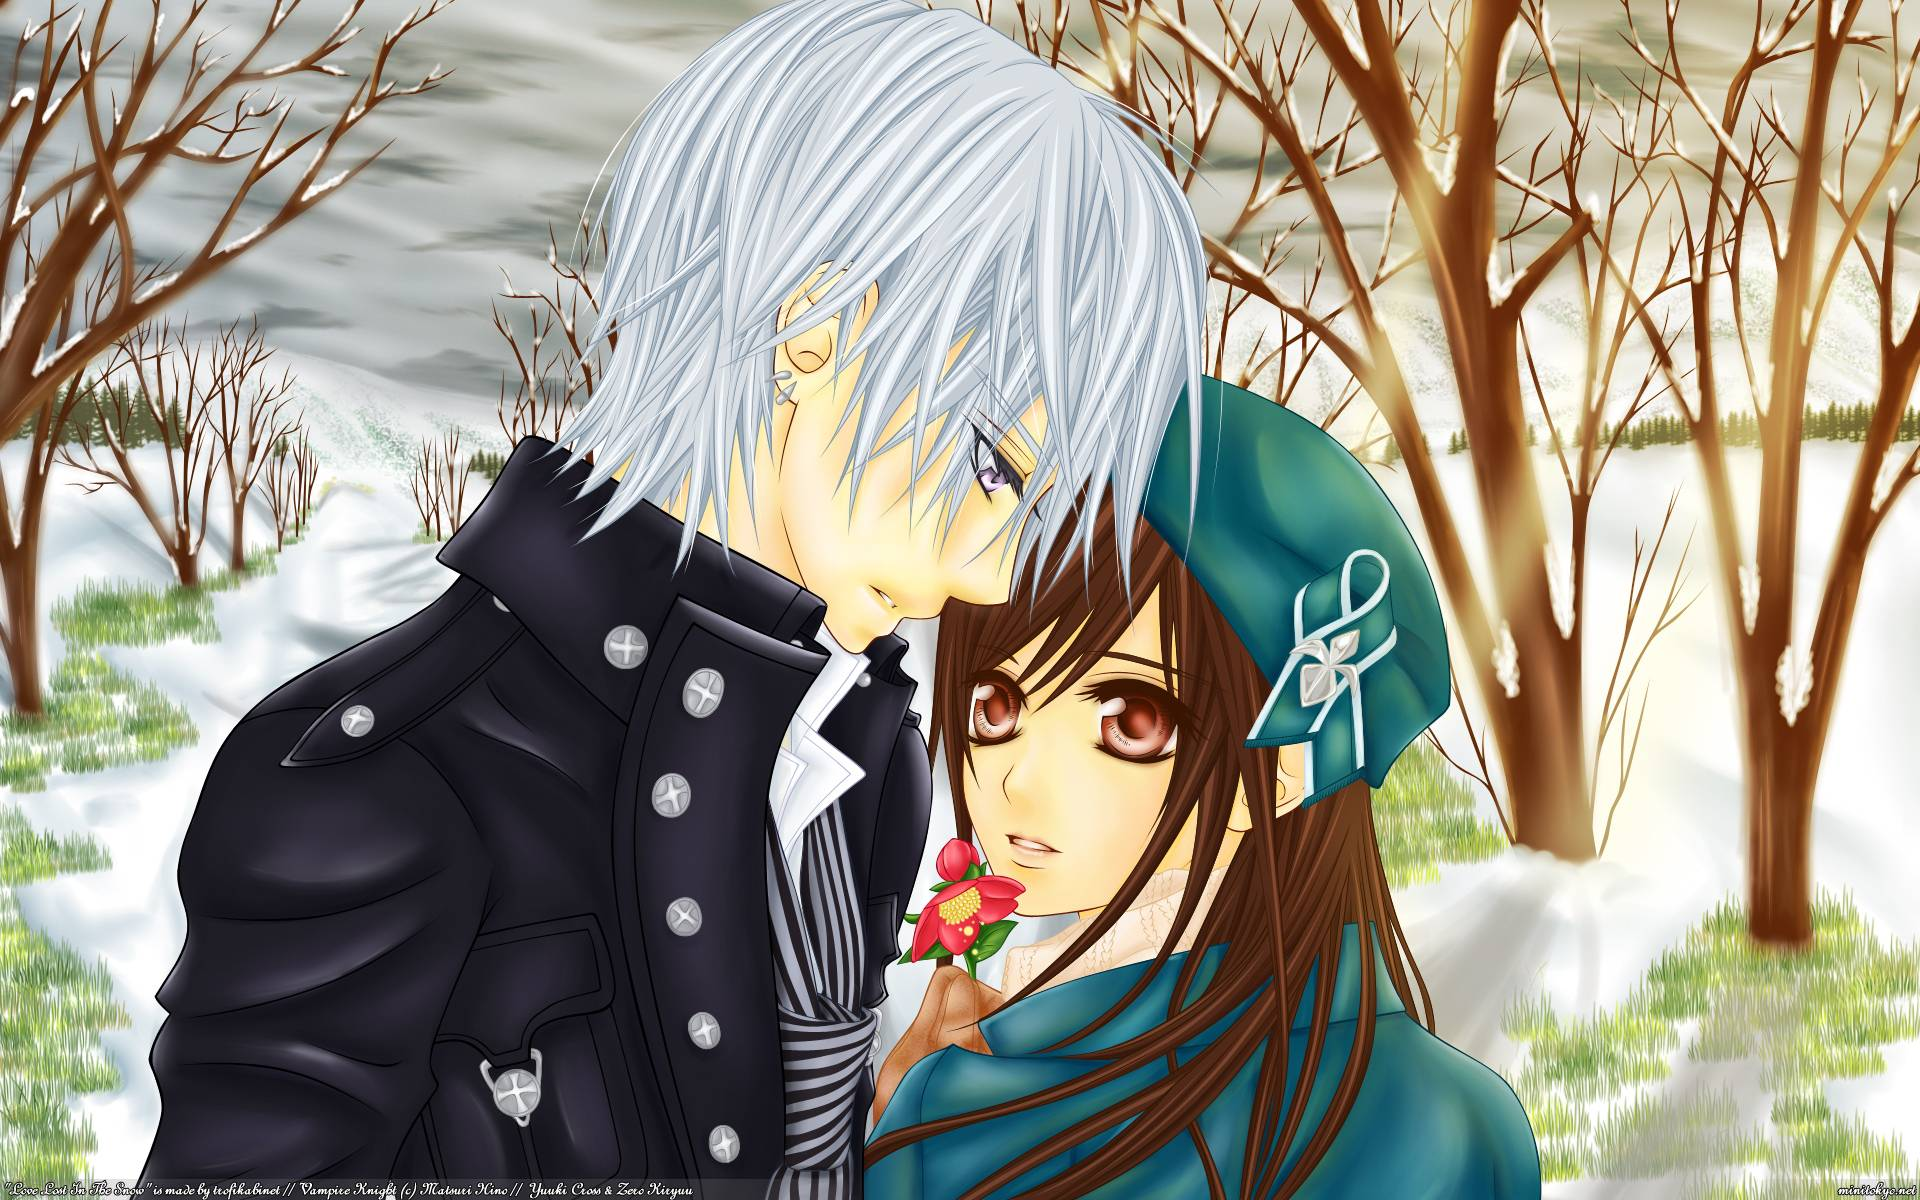 Anime Images Wallpaper Love Couples Couple Hd Wallpaper: Anime Love Wallpapers